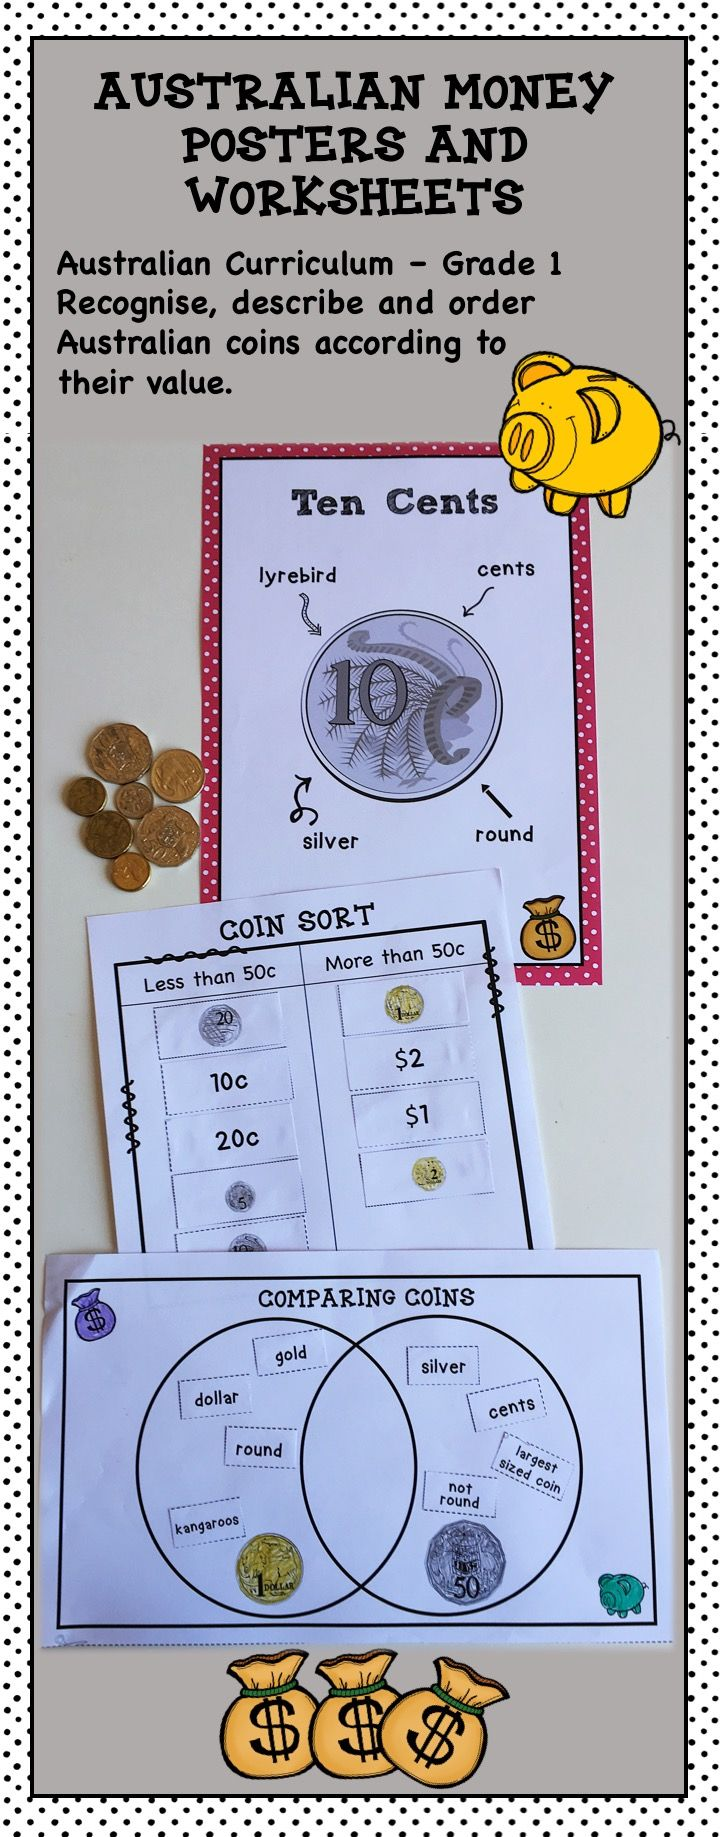 Australian Money Posters and Worksheets Higher Order Thinking HOTS Grade 1 - Fun and engaging worksheets that get students thinking. Students compare and contrast Australian coins and sort money amounts. They are directly related to curriculum documents. The posters display Australian coin features. Check it out here: https://www.teacherspayteachers.com/Product/Australian-Money-Posters-and-Worksheets-Higher-Order-Thinking-HOTS-Grade-1-2578768